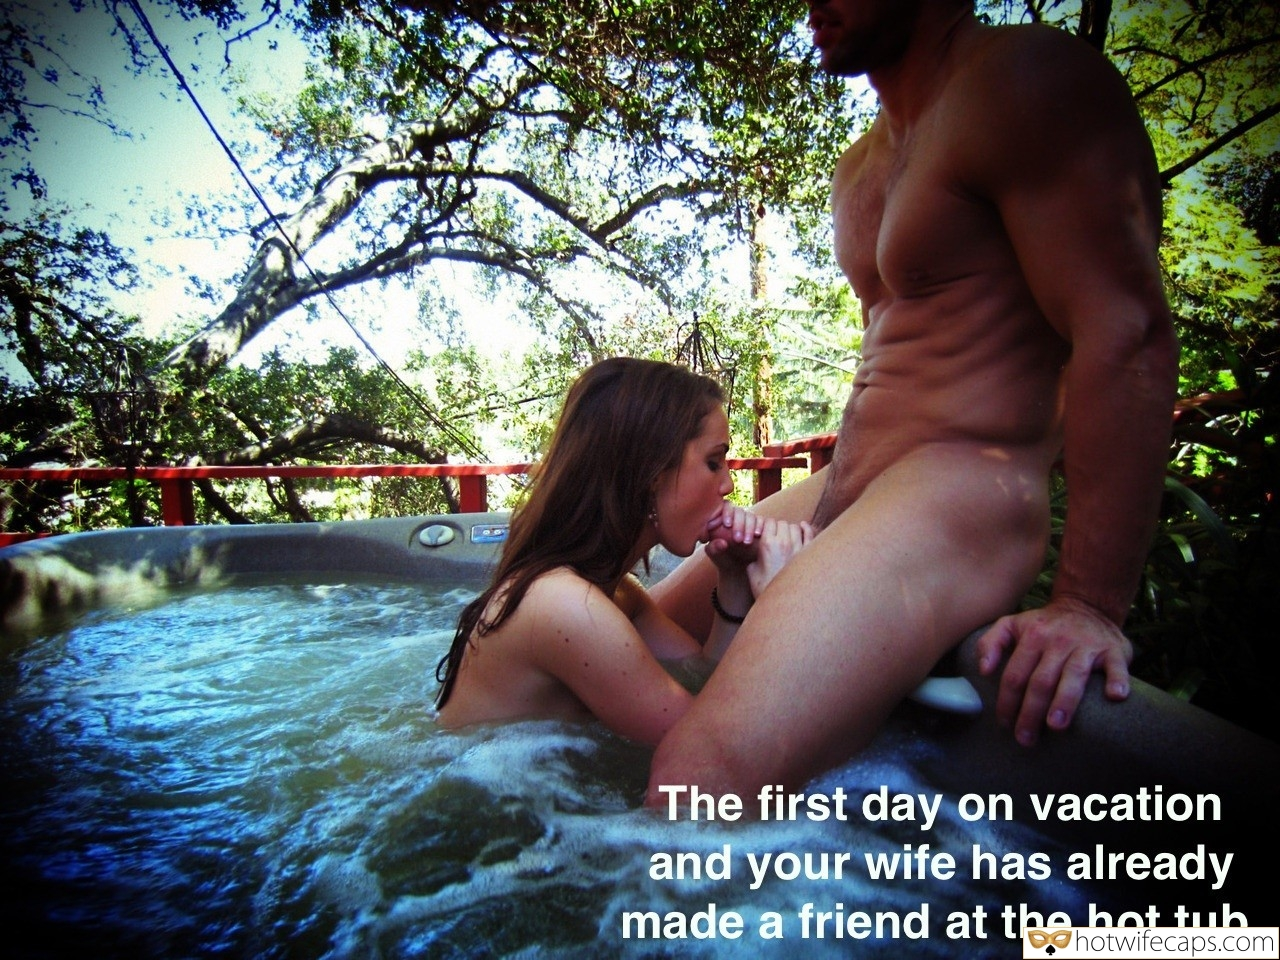 Vacation Friends Blowjob  hotwife caption: The first day on vacation and your wife has already made a friend at the hot tub. Strong Dude Receives Blowjob in Hot Tub